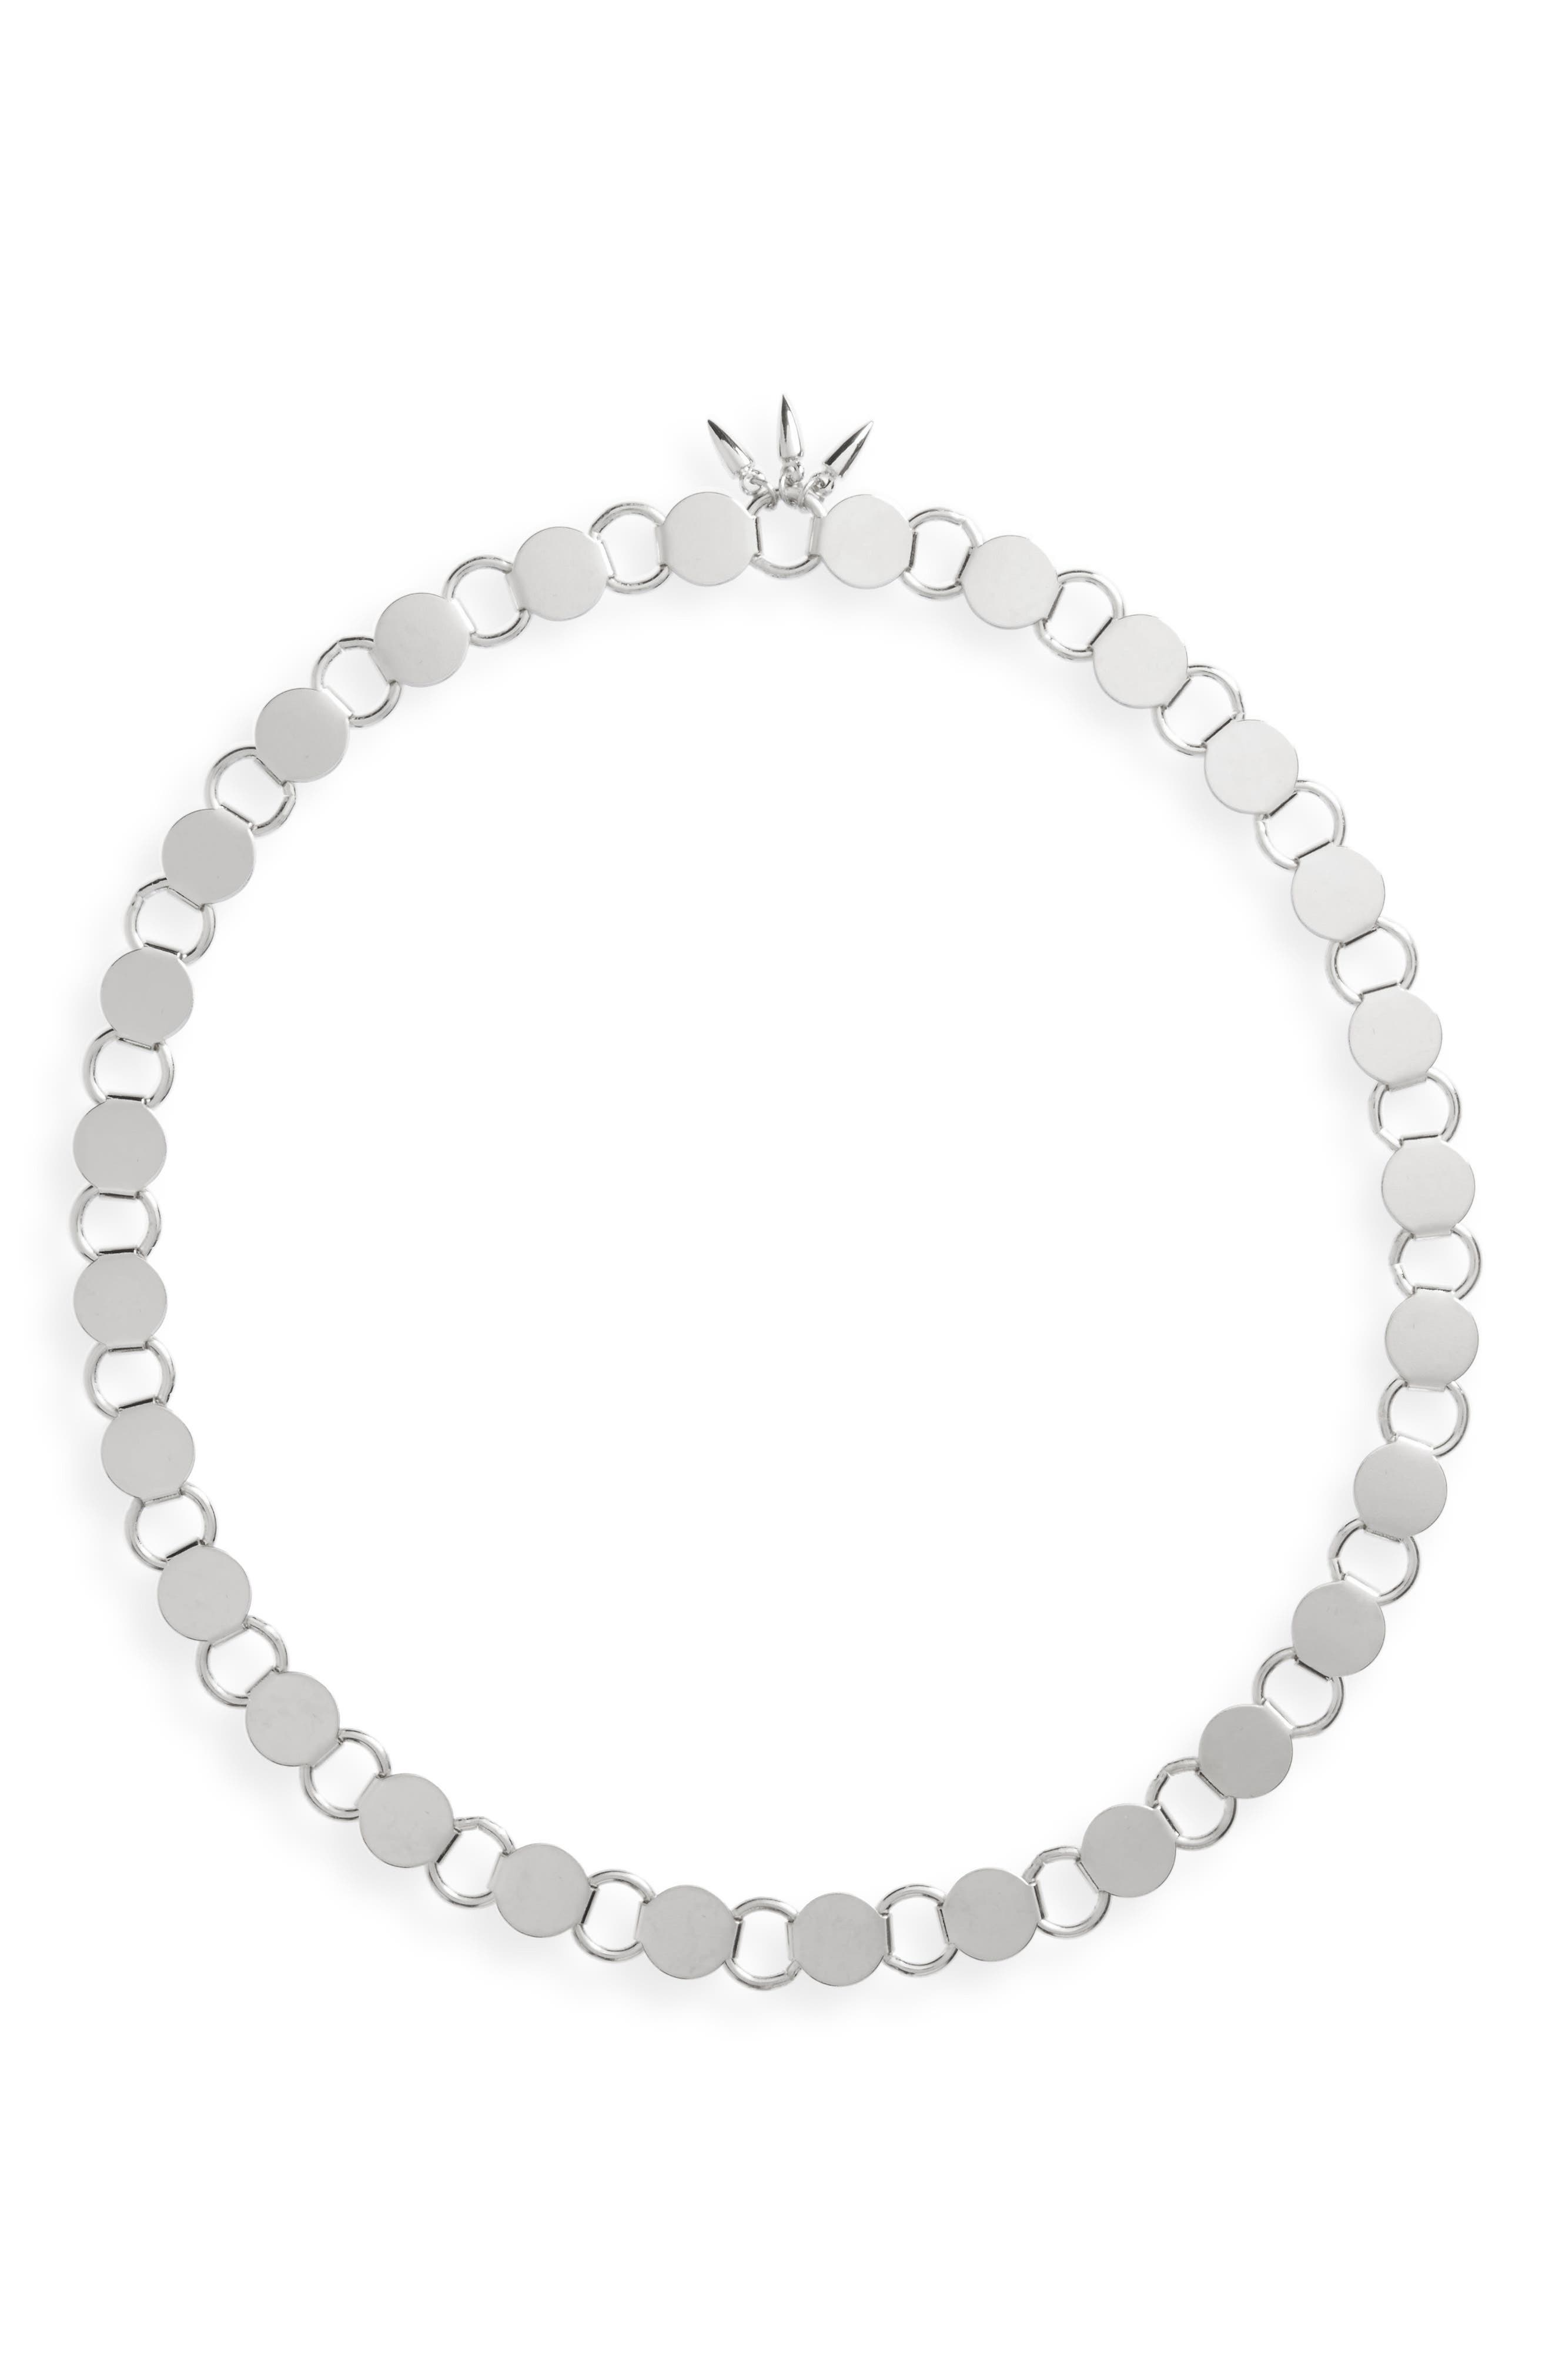 Convertible Link Necklace,                             Main thumbnail 1, color,                             Silver